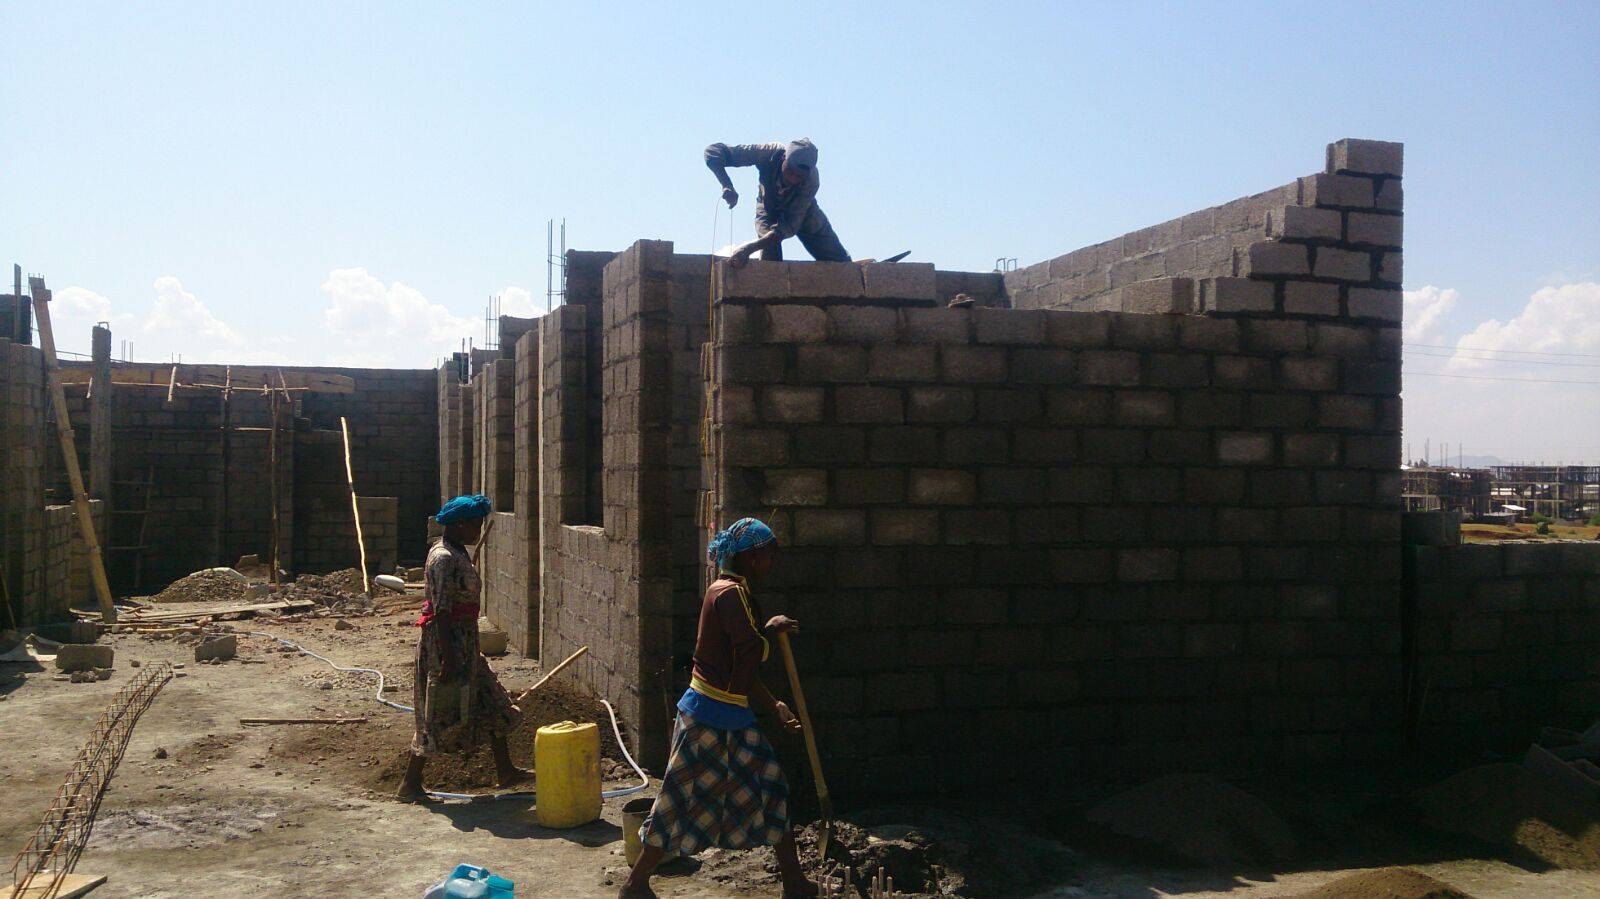 Ethiopia: Hospital, in construction